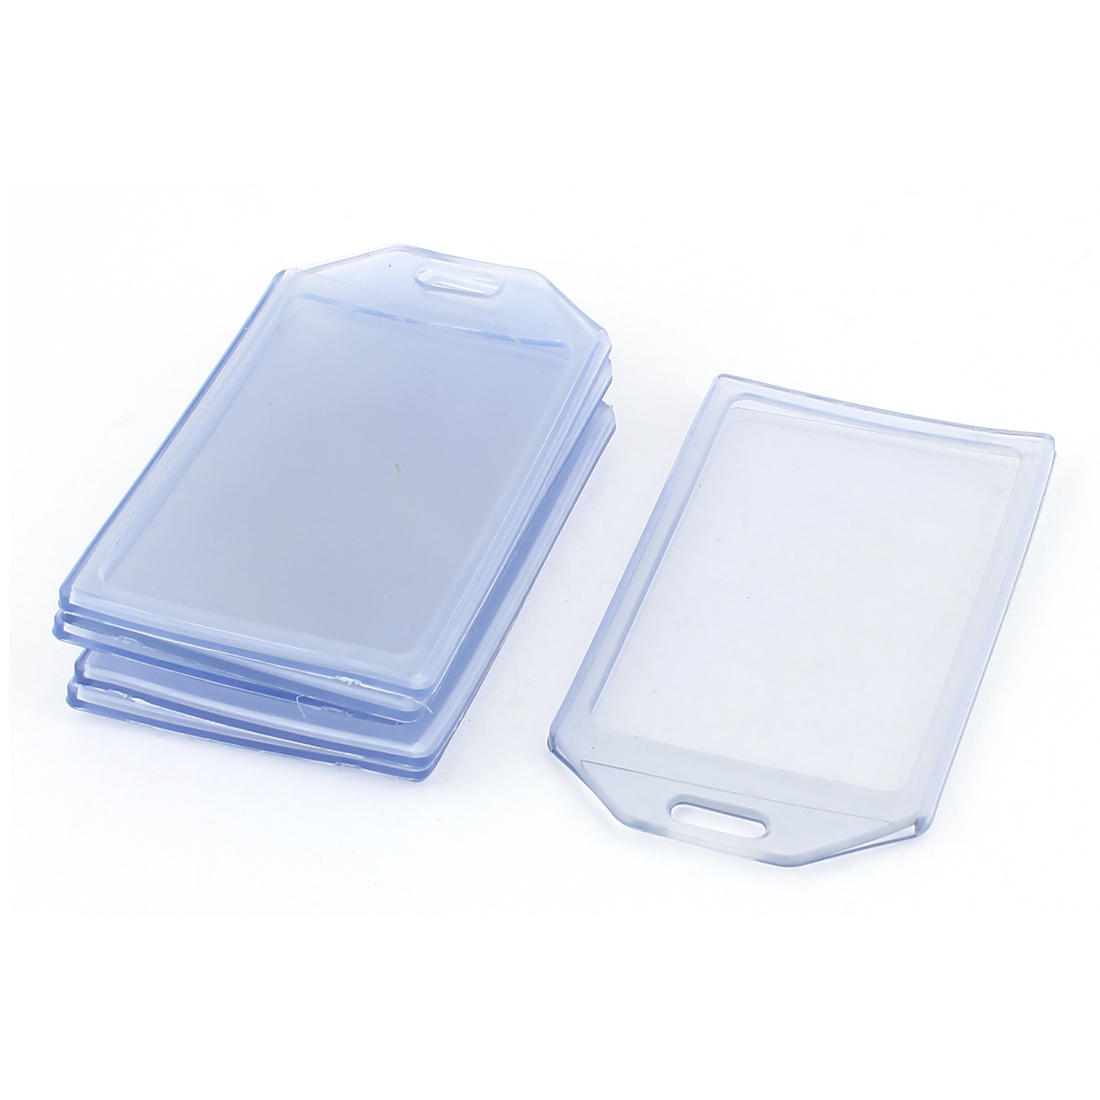 6 Pcs Vertical Clear Blue Plastic Work Exhibition ID Card Badge Holder 85x54mm